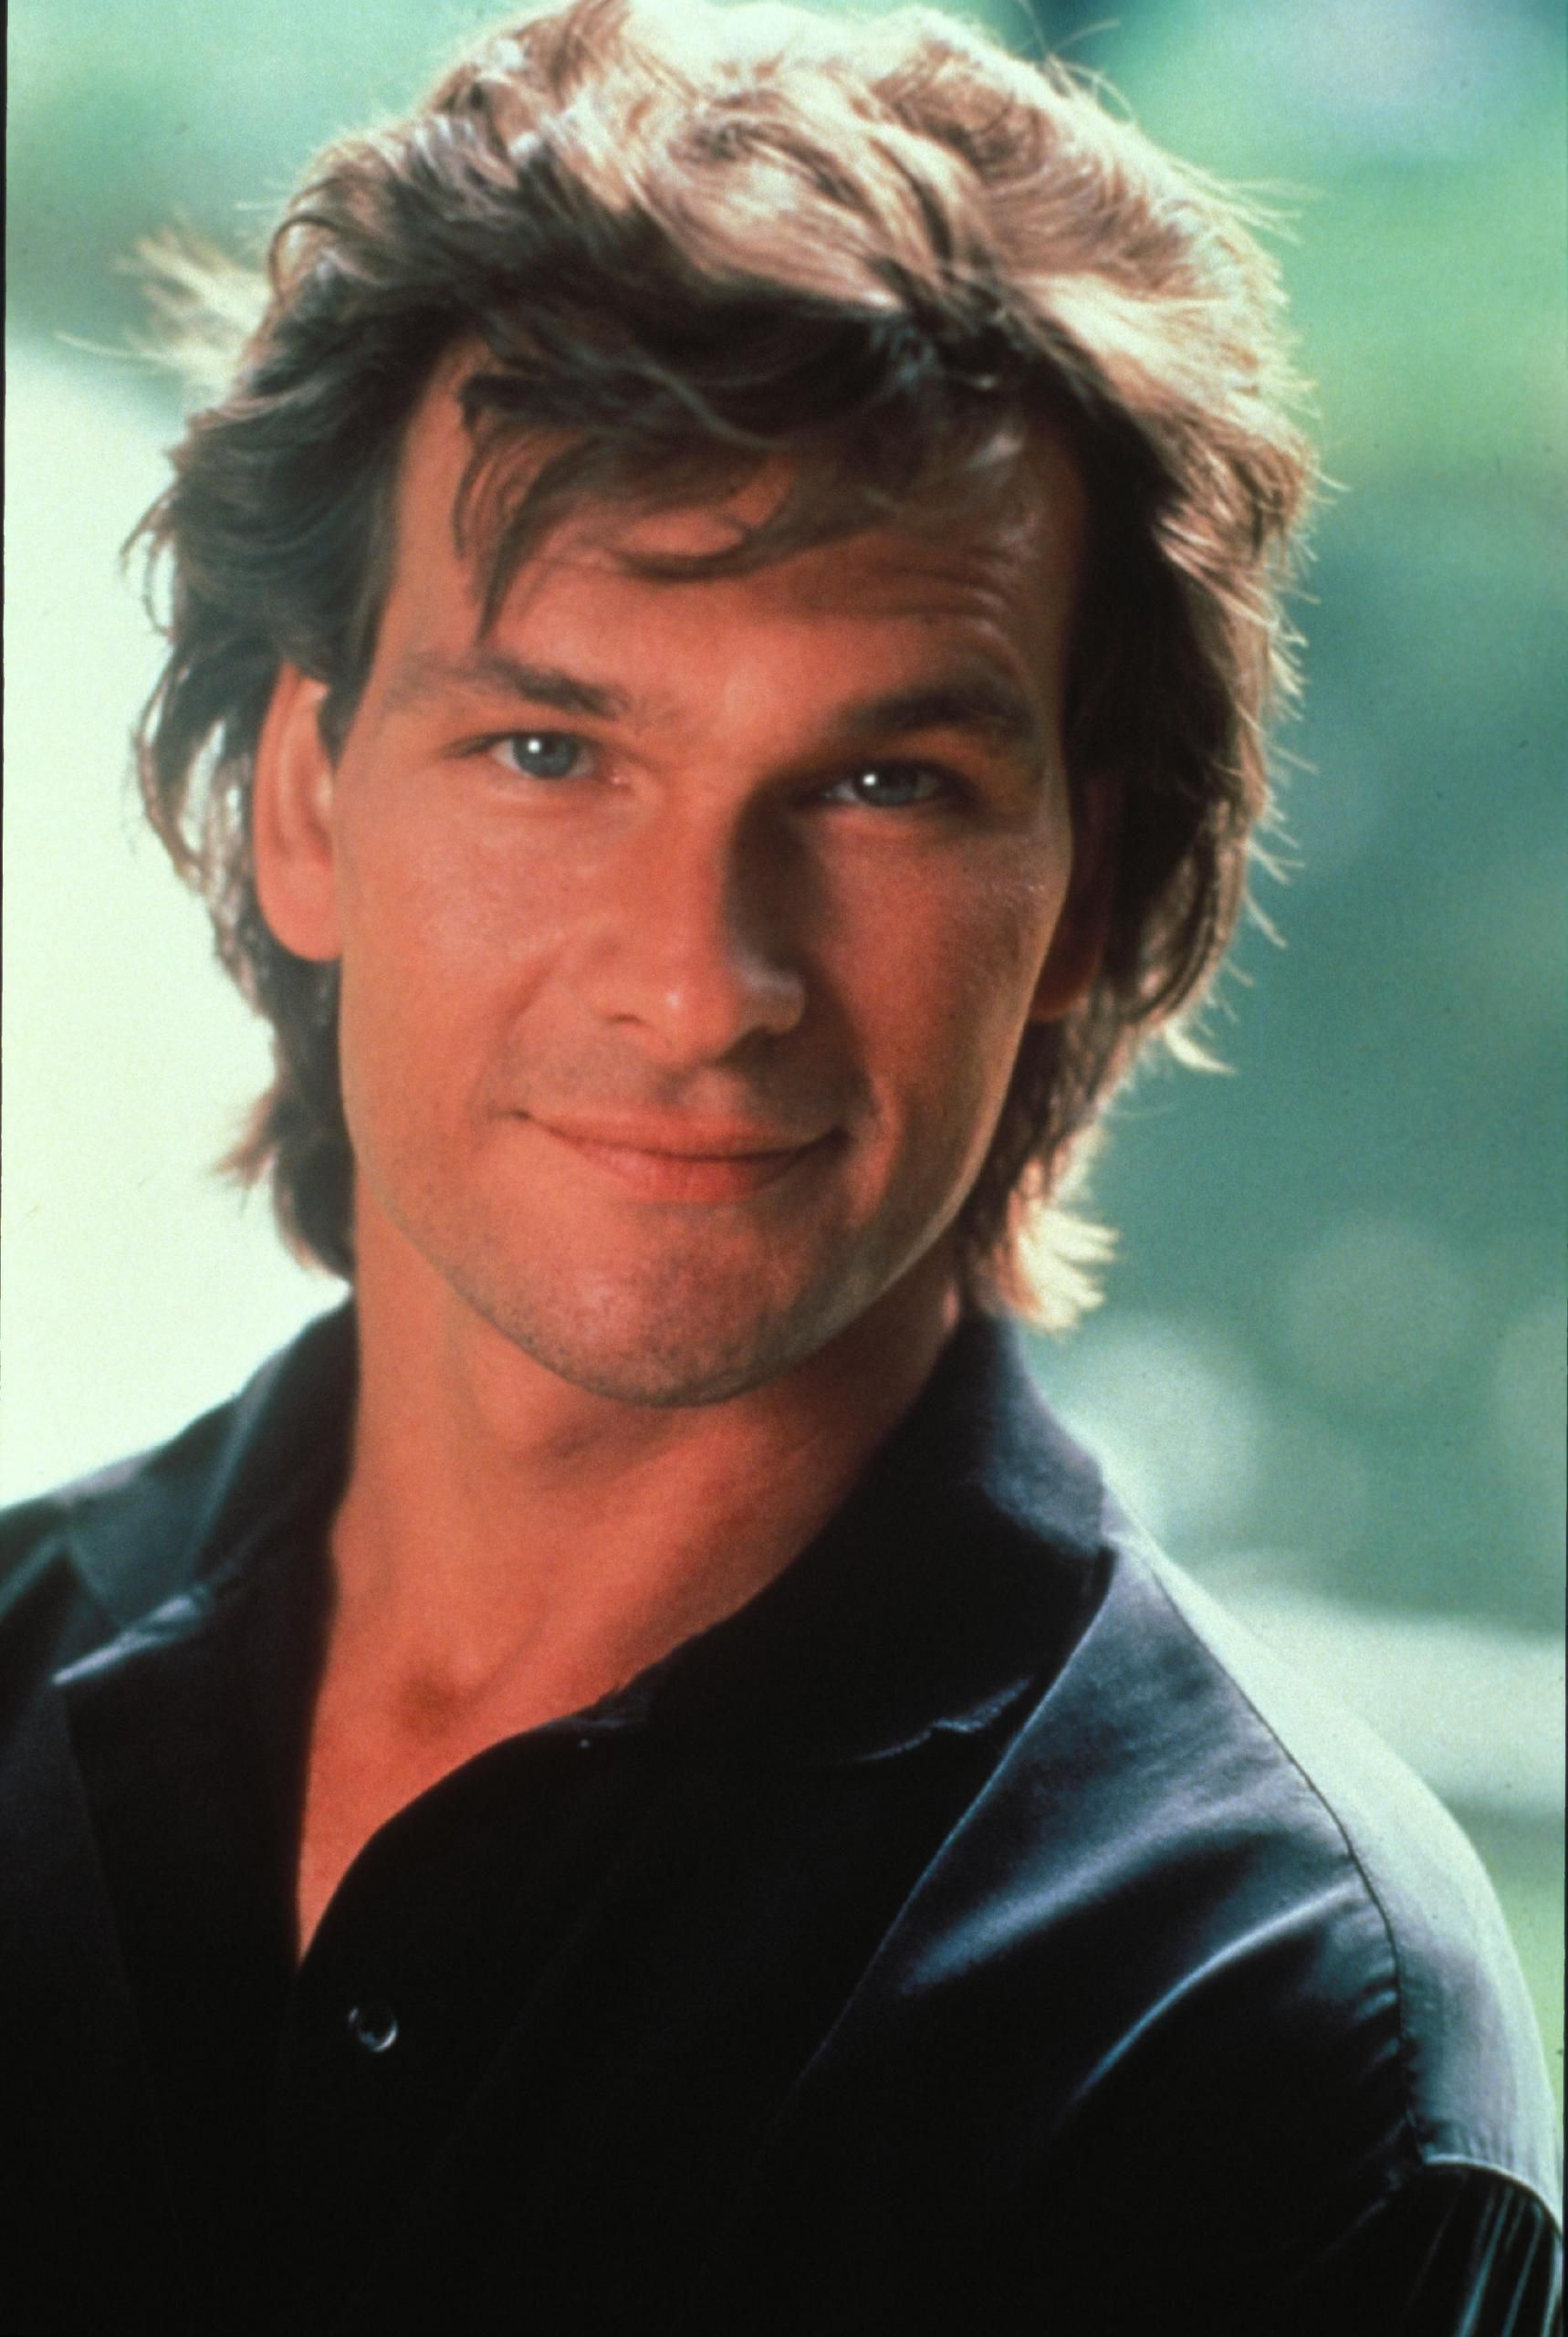 Pictures swayze of patrick